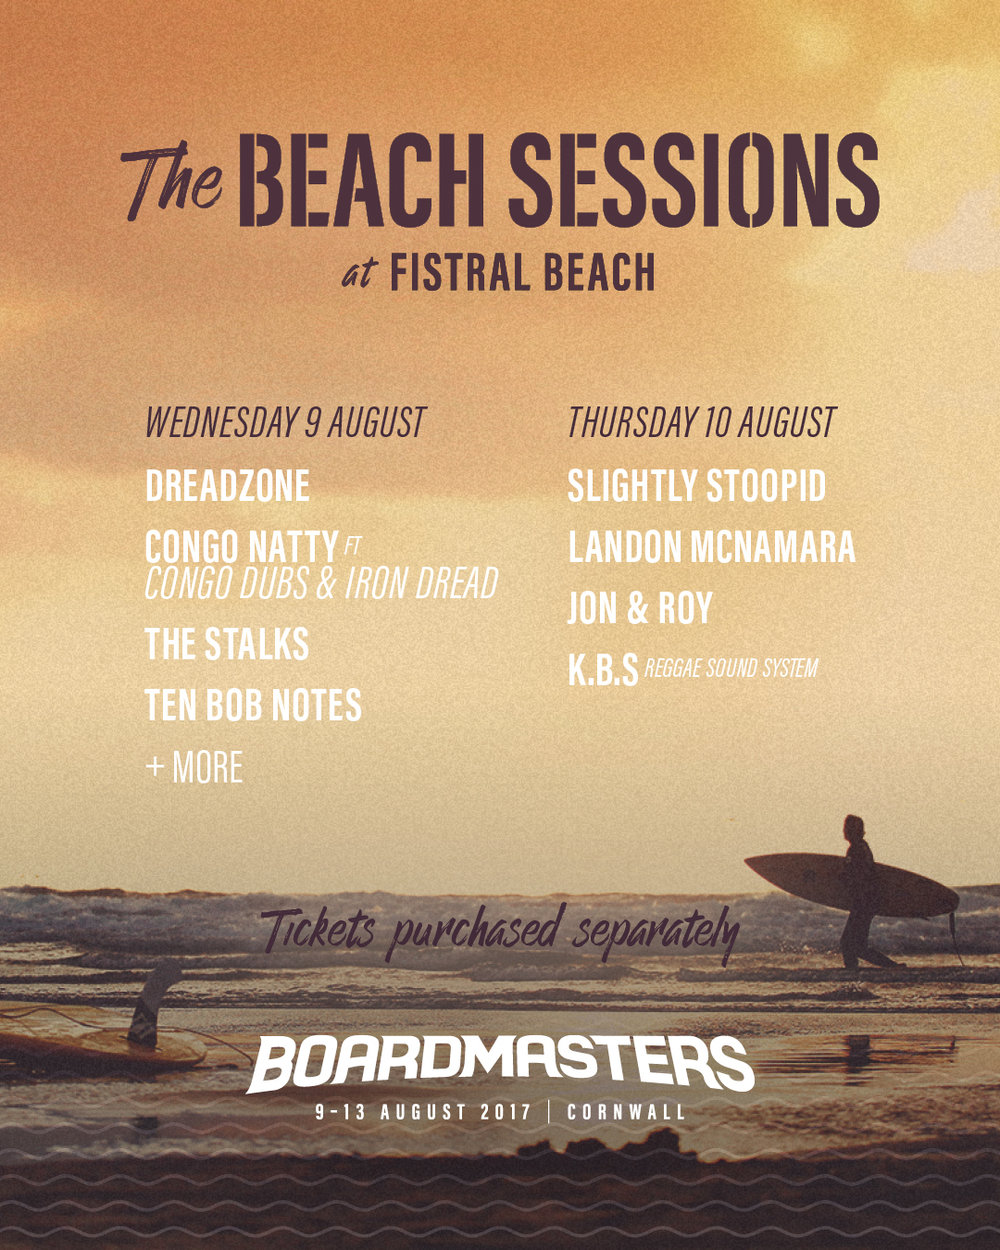 Boardmasters Beach sessions take place on the Wednesday and Thursday evenings